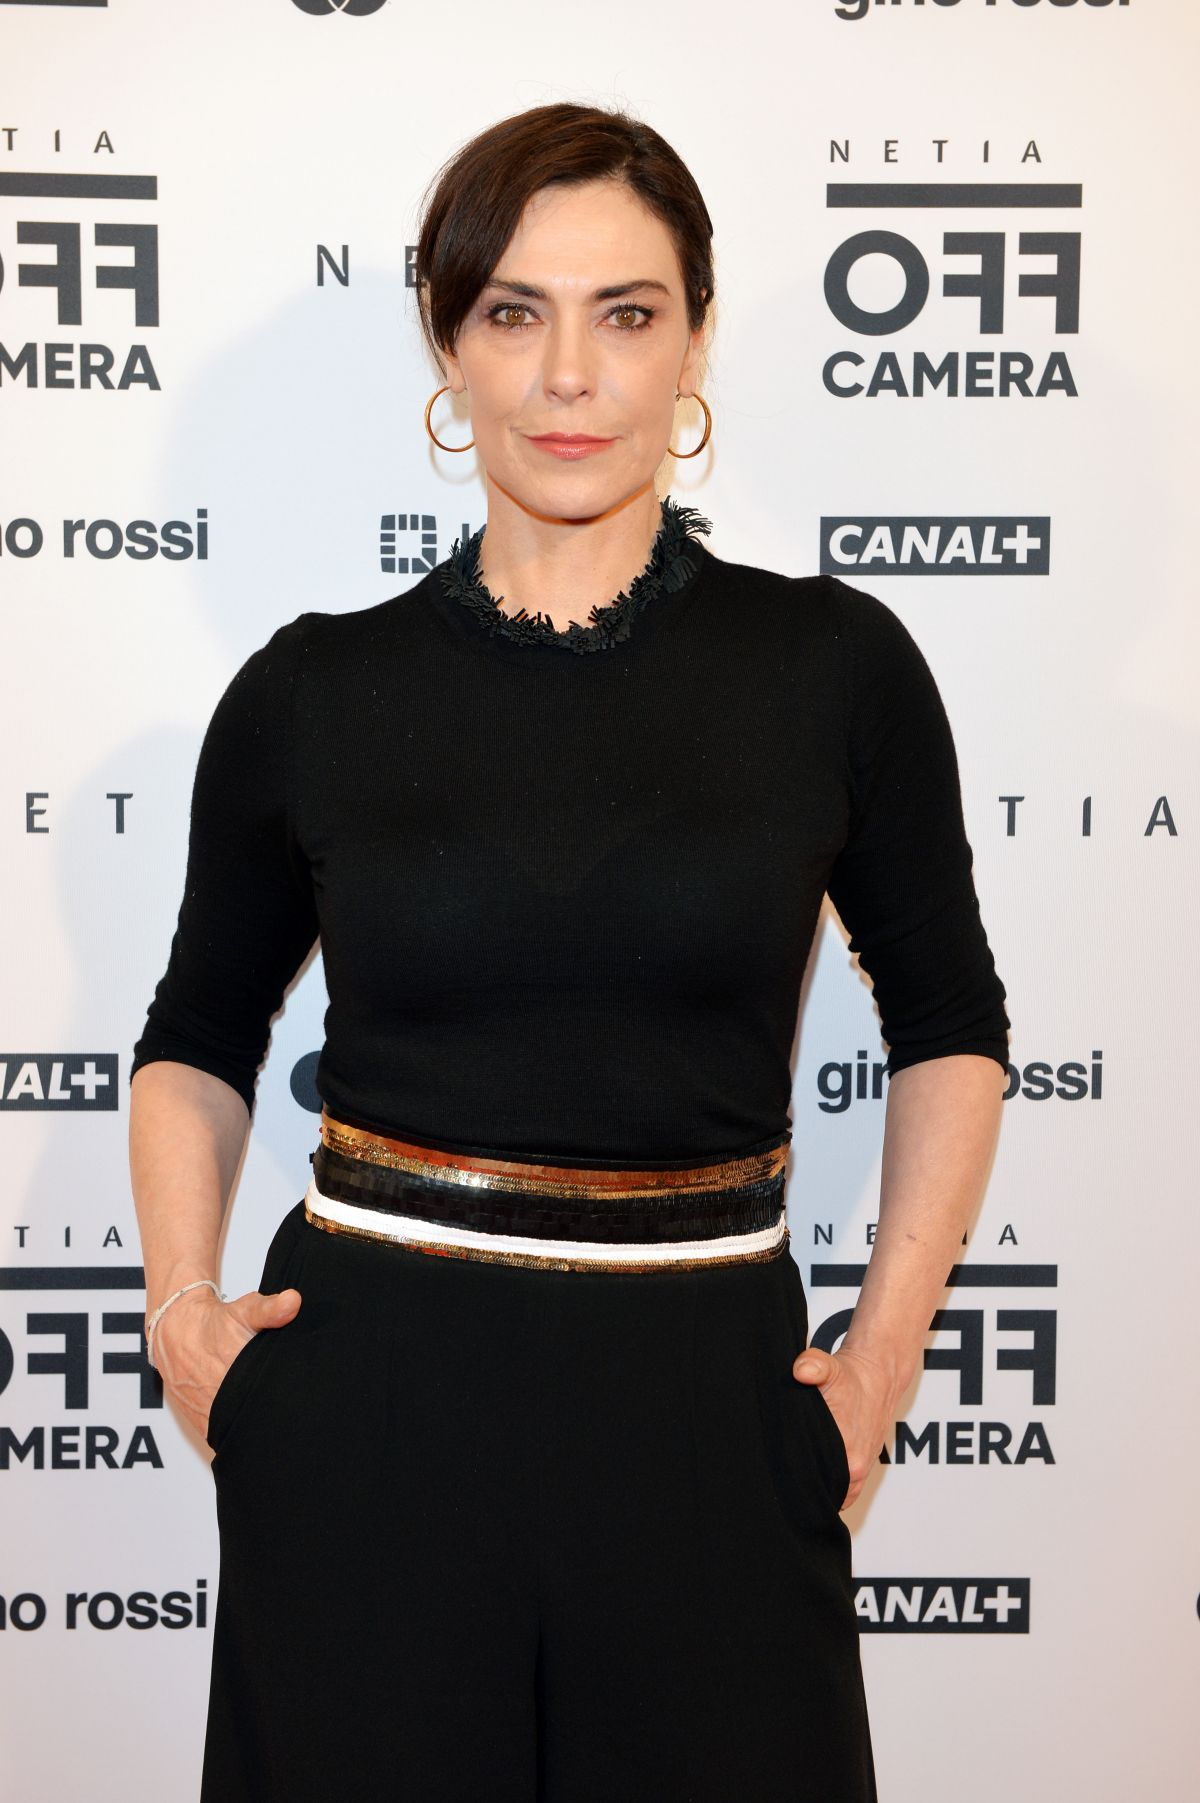 MICHELLE FORBES at Netia off Camera Film Festival Closing Ceremony in Krakow 05/06/2017